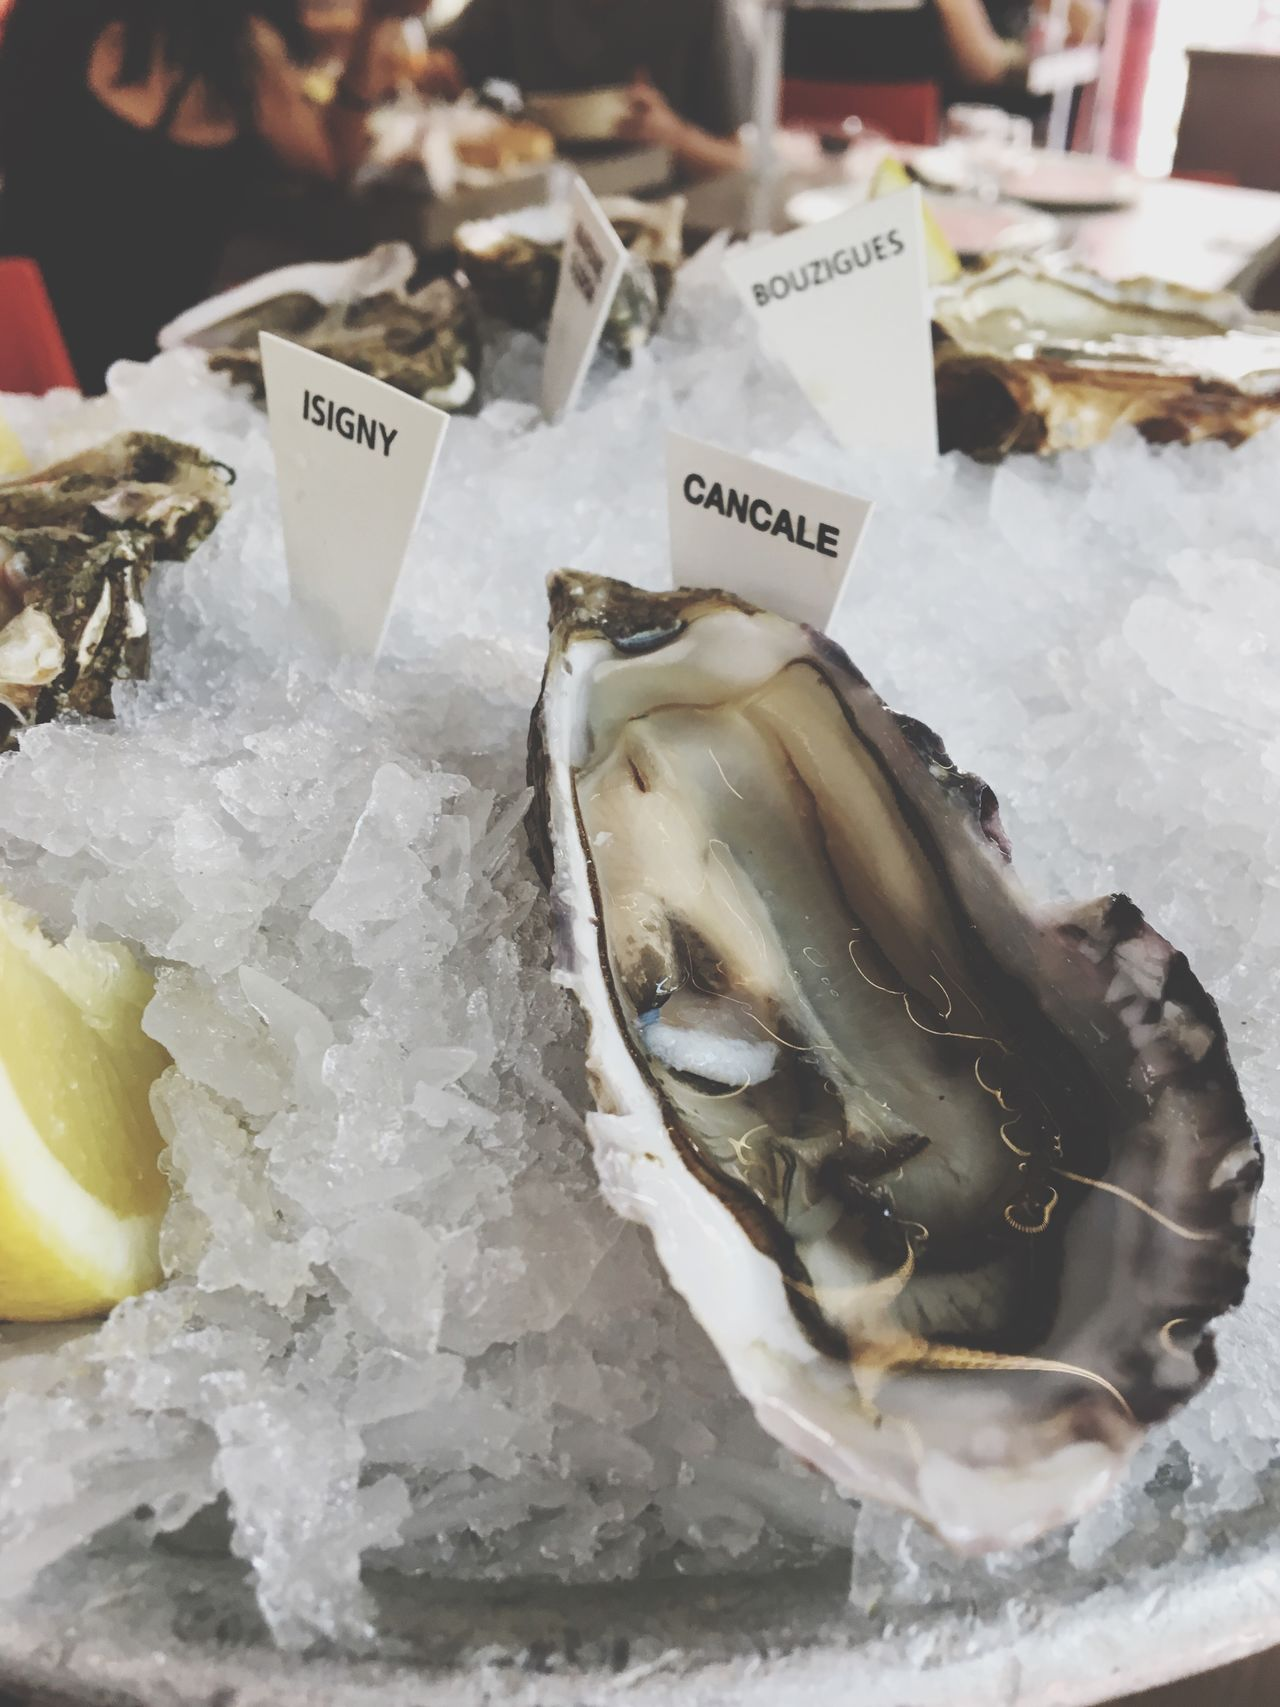 Seafood Food And Drink Food Freshness Ice Market Raw Food Healthy Eating Market Stall Fish Price Tag No People For Sale Retail  Fish Market Close-up Business Indoors  Day Oyster